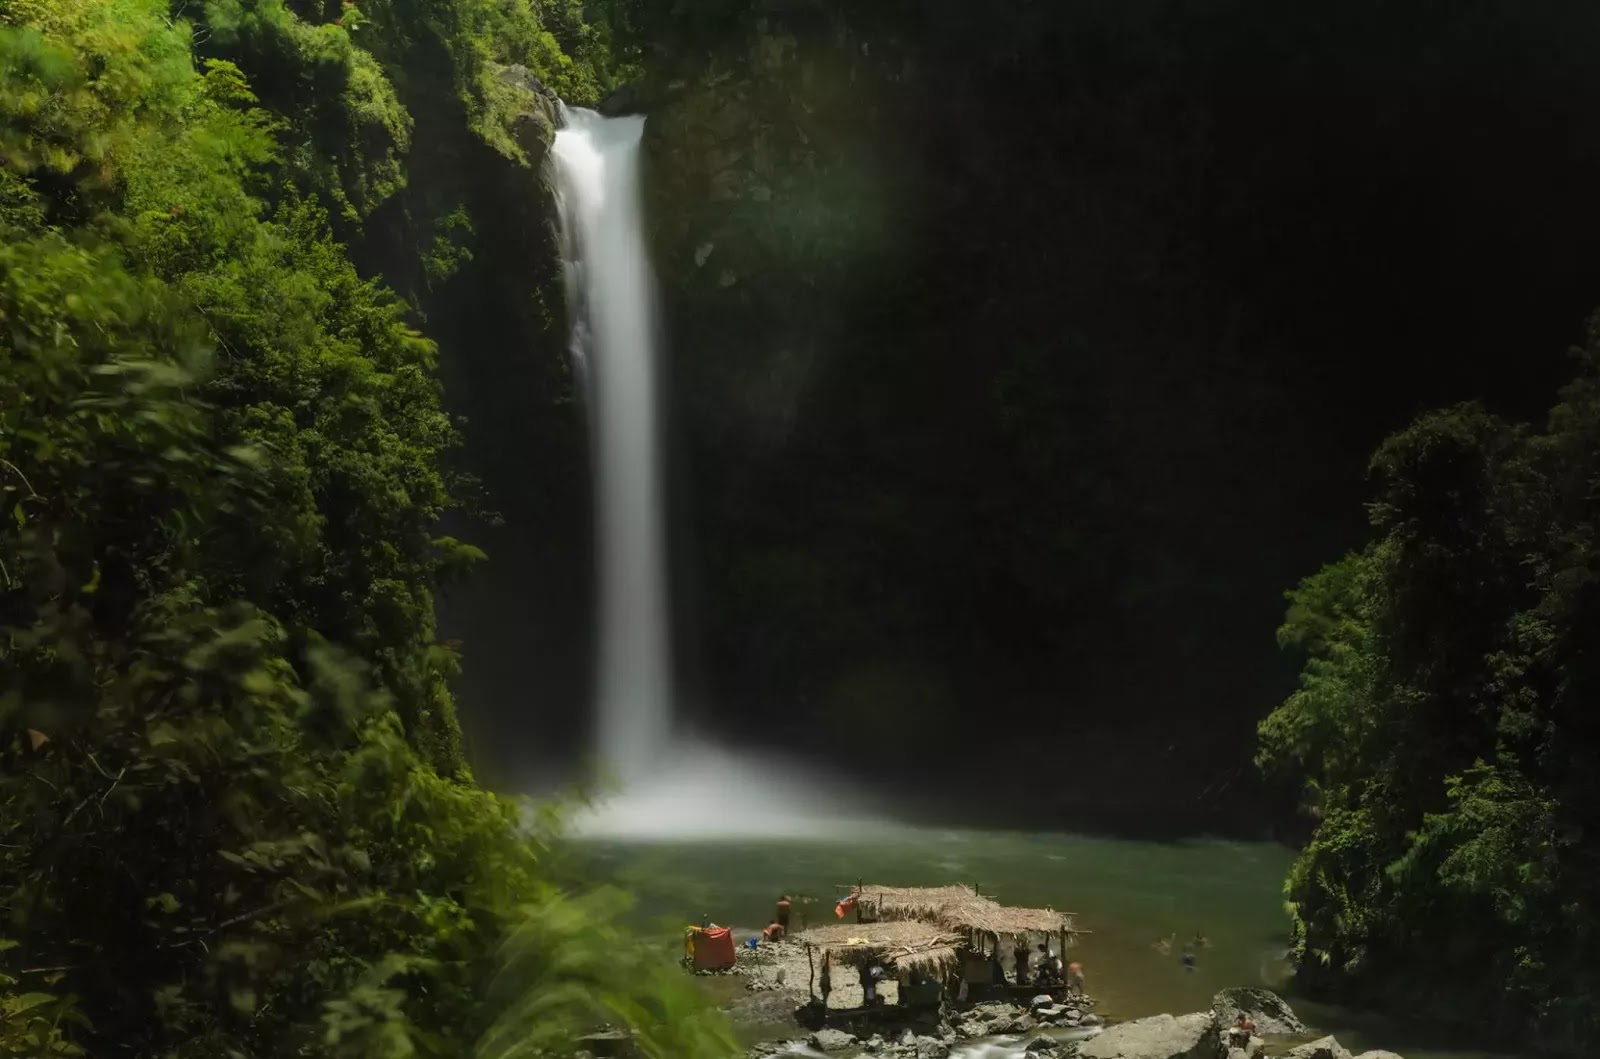 Tappiyah Waterfalls Deck  Stop Over Exposure Photography Batad Ifugao Cordillera Administrative Region Philippines